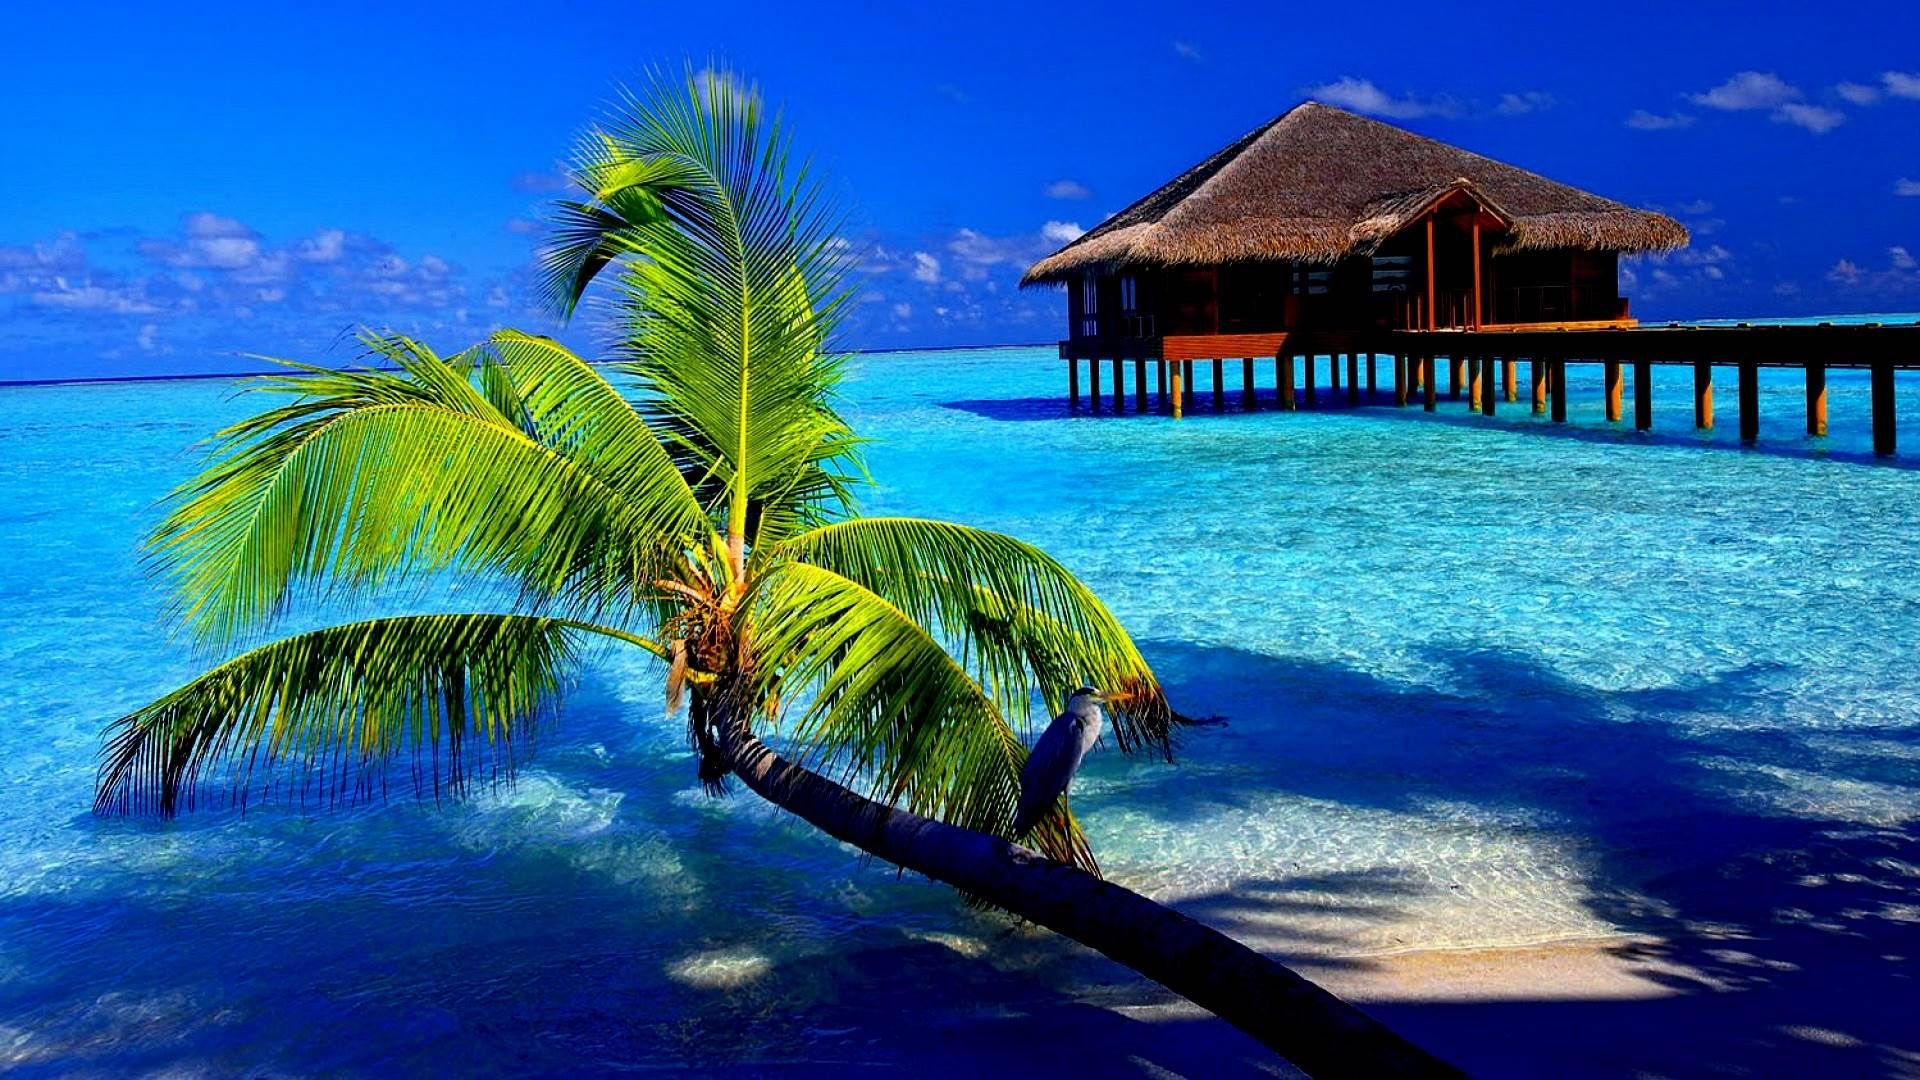 + Tropical Beach Backgrounds, Wallpapers, Images, Pictures